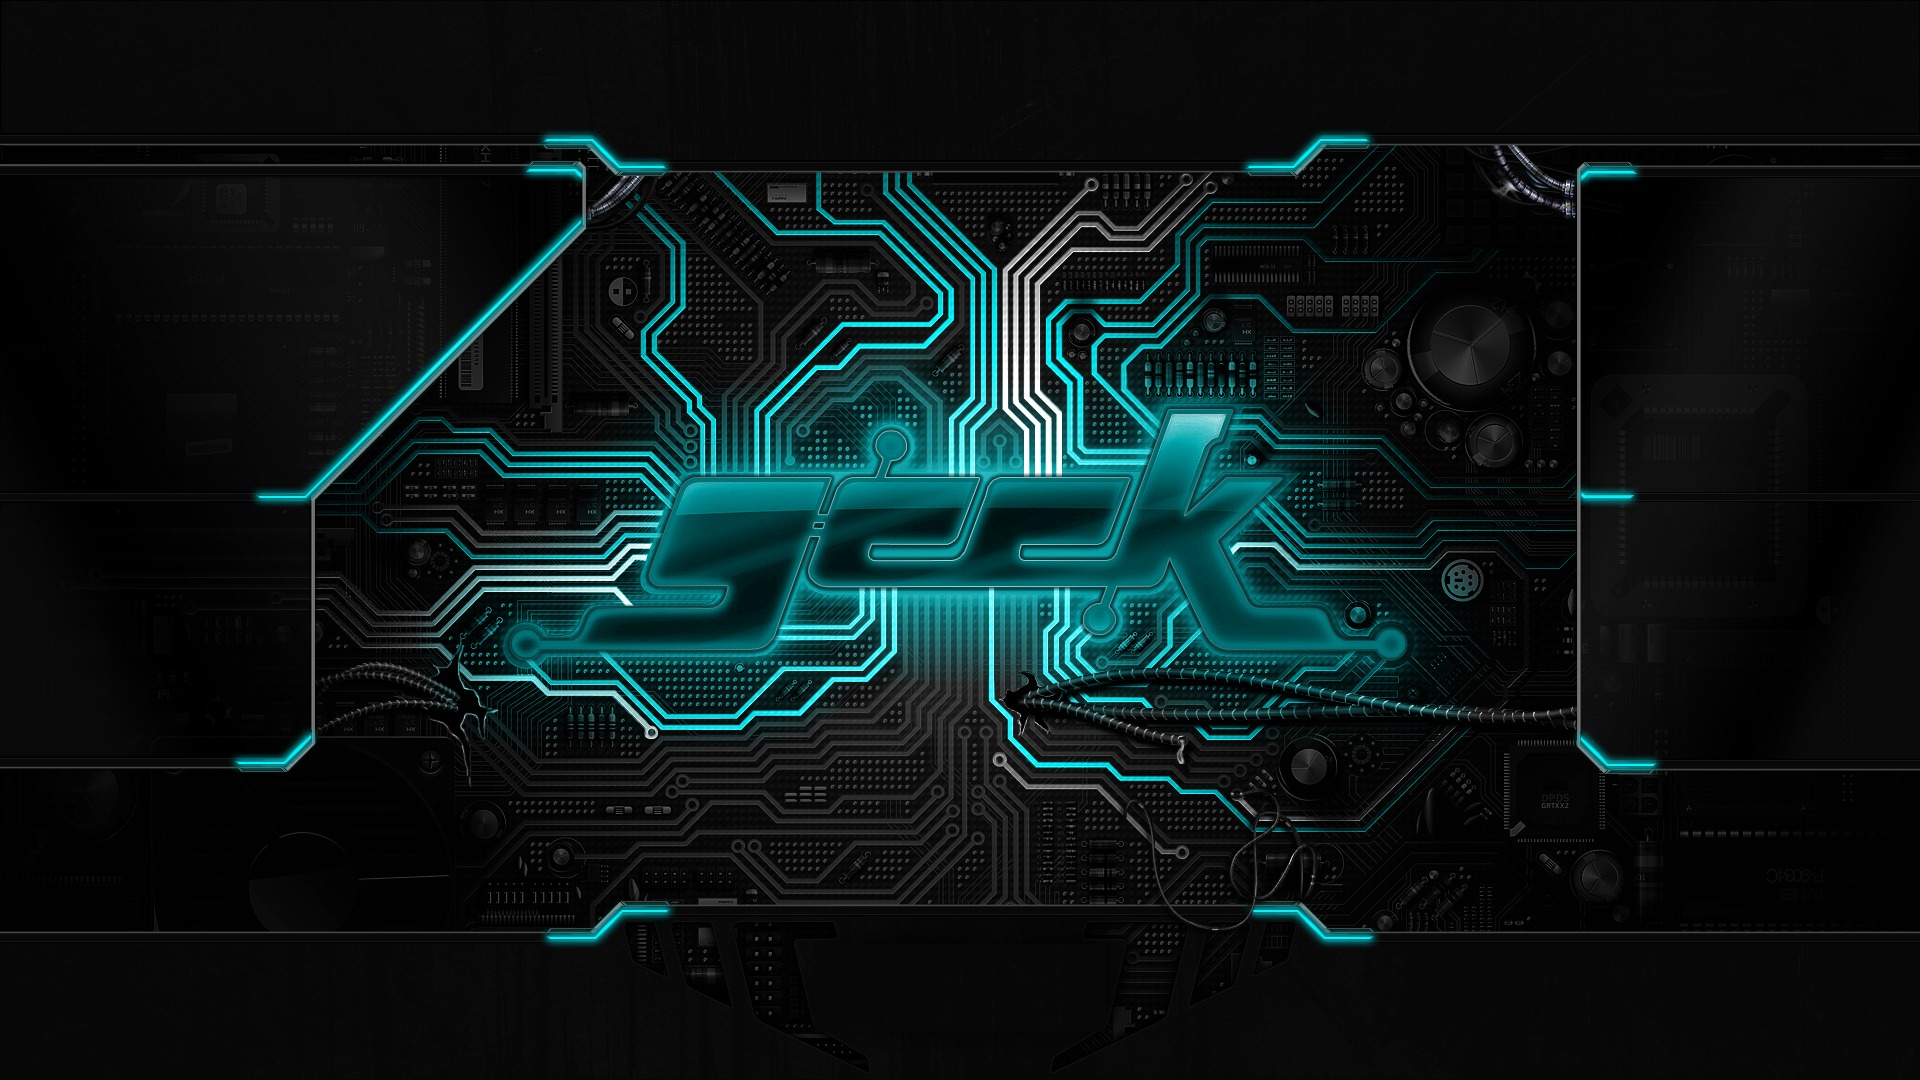 Neon Circuits Wallpaper And Background Image: Geek Chip Circuit Board Neon Wallpaper